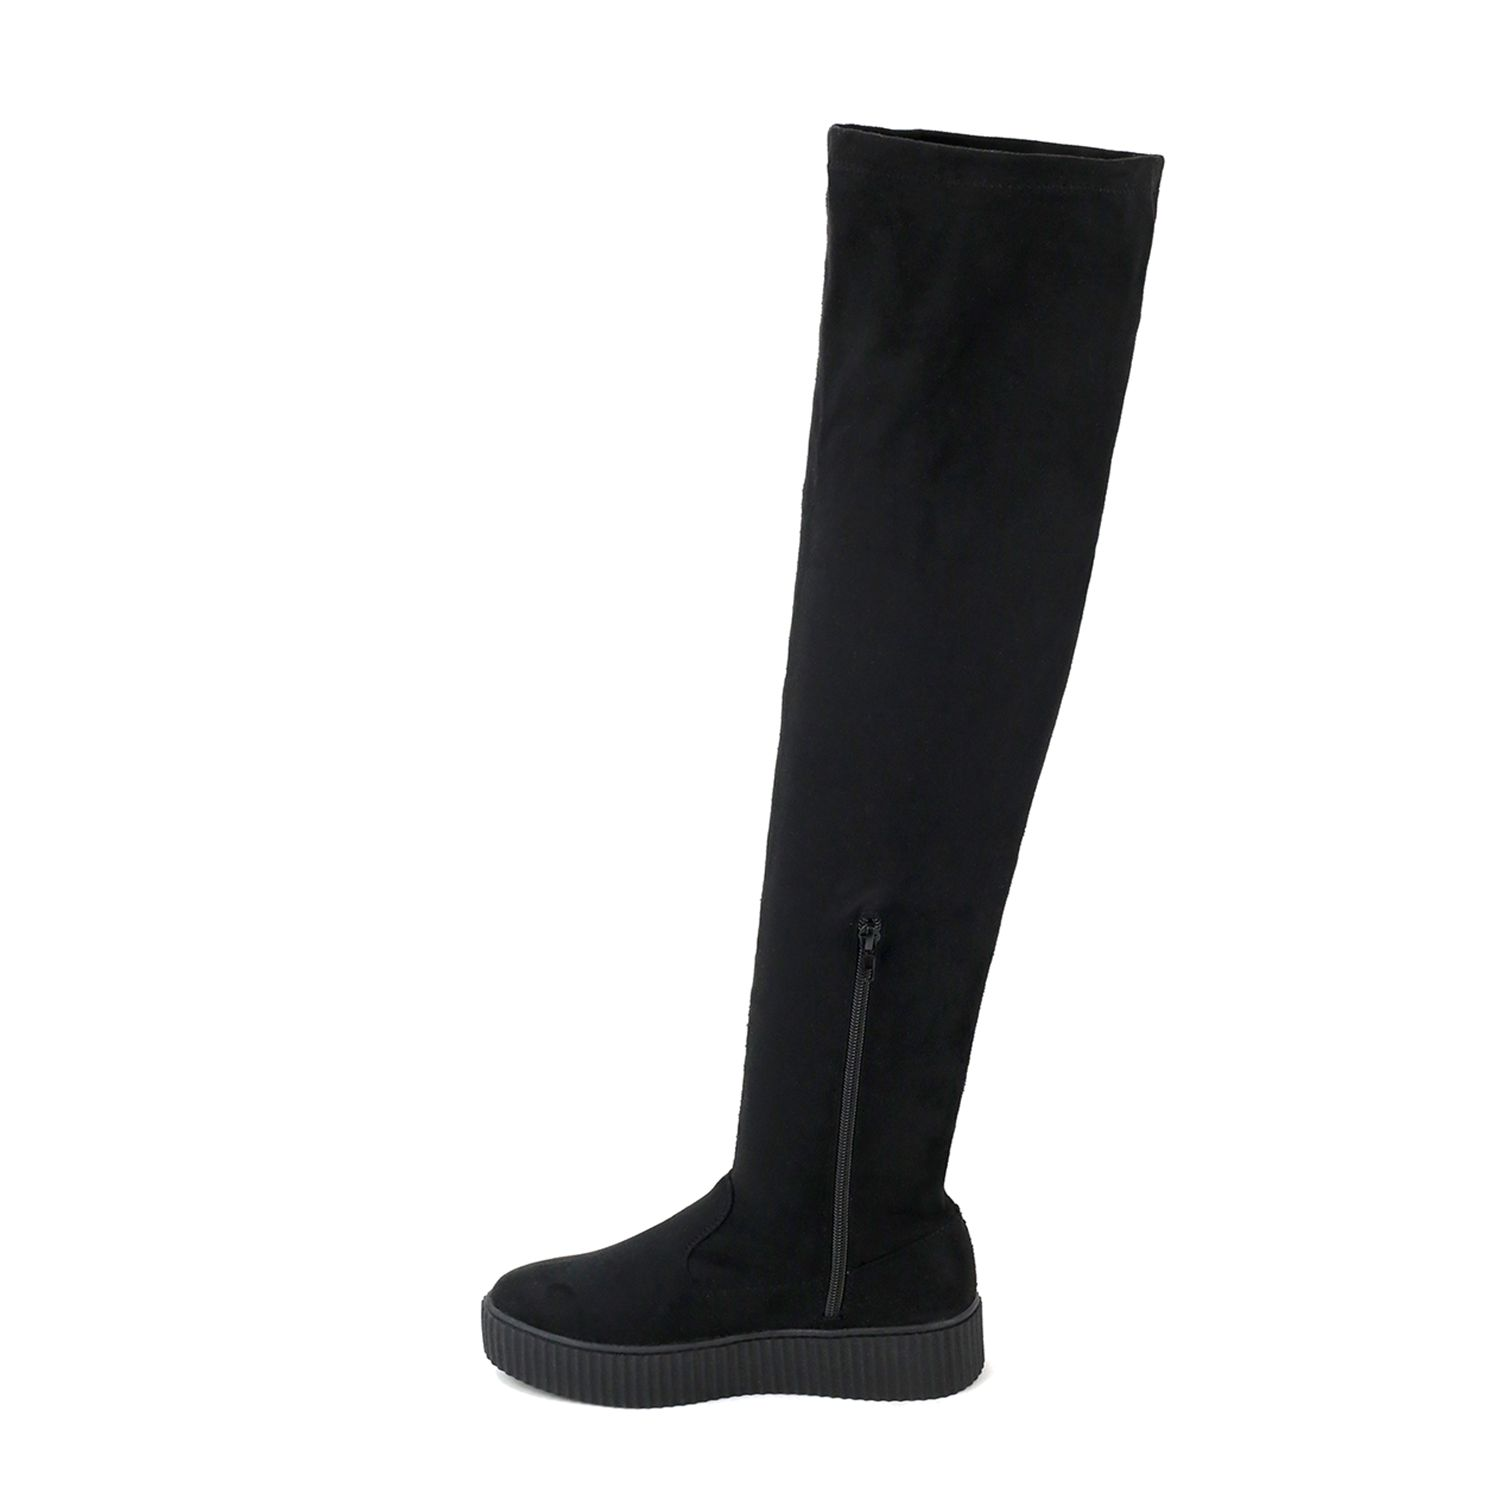 b8728ea98eb Womens Over-the-Knee Boots - Shoes   Kohl's